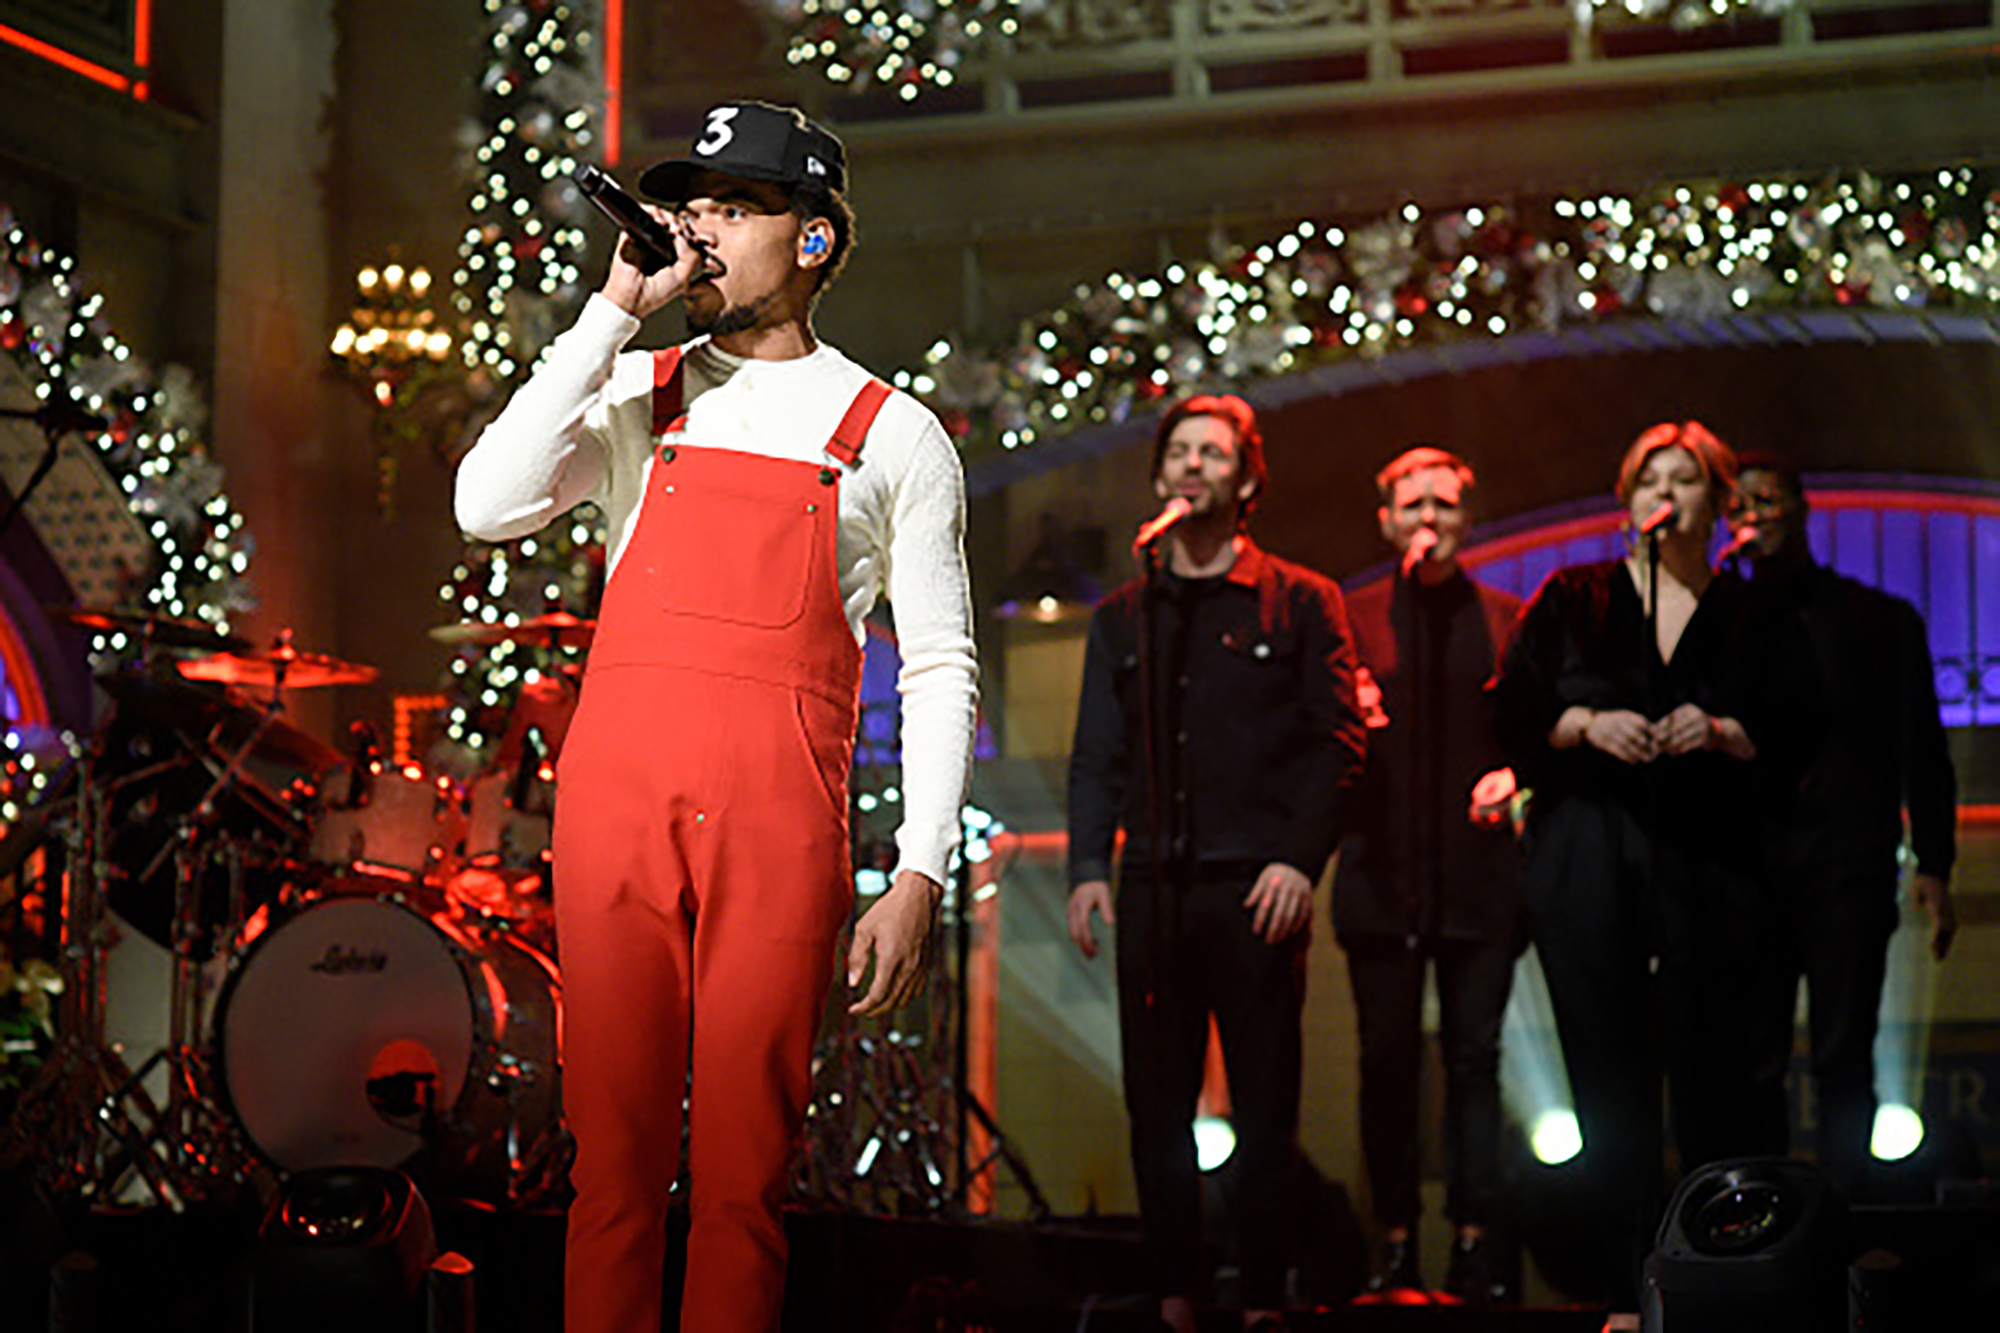 Chance The Rapper performs on December 17, 2016 at Saturday Night Live (Photo by: Will Heath/NBC/NBCU Photo Bank via Getty Images)